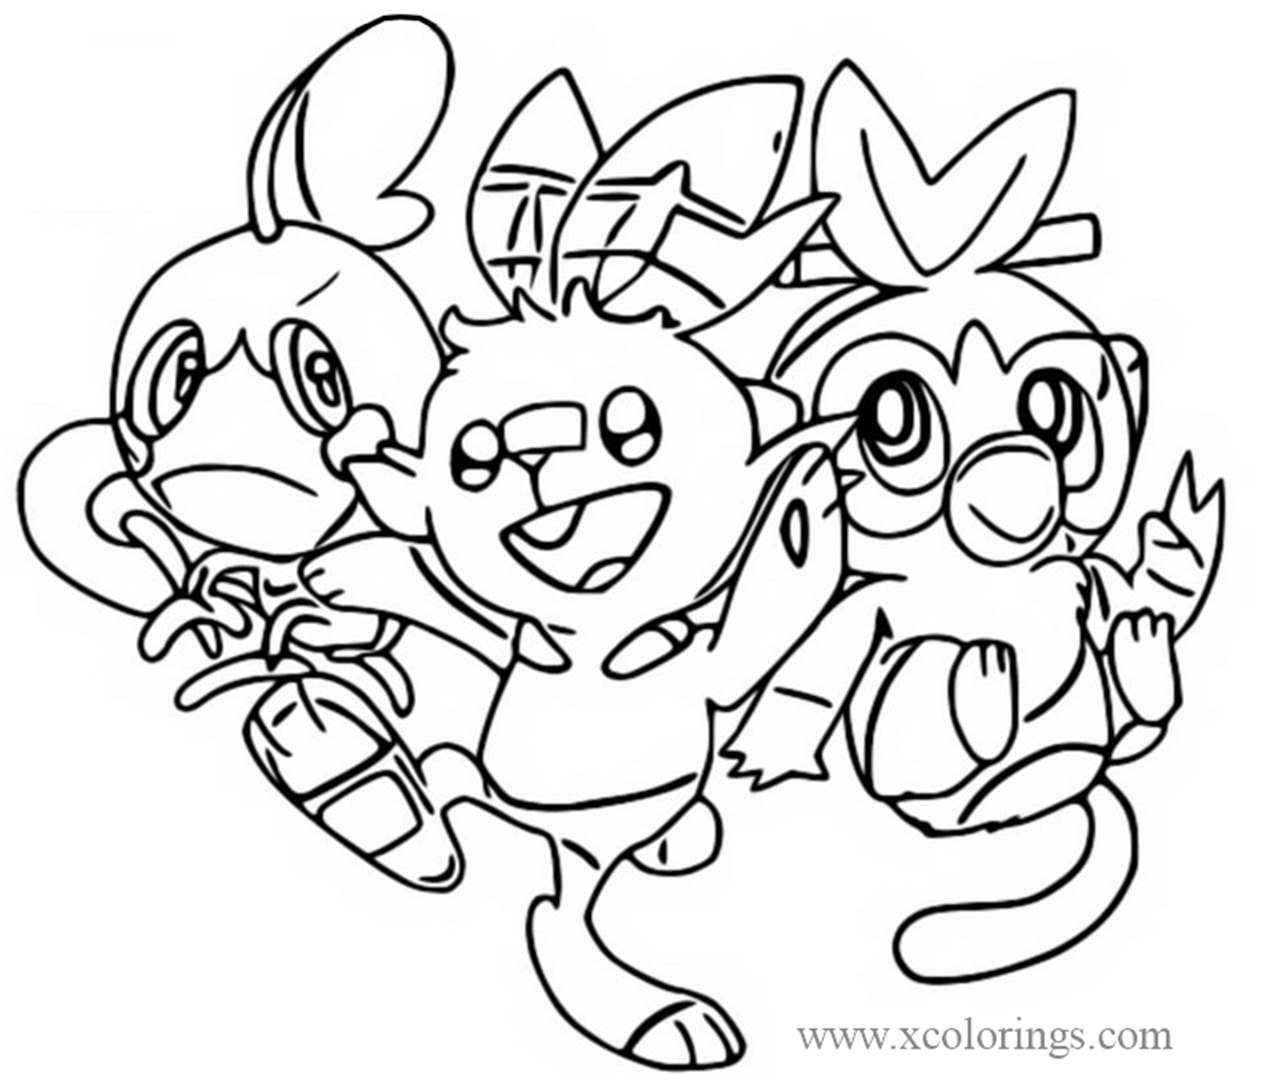 Sobble Scorbunny And Grookey From Pokemon Sword And Shield Coloring Pages Xcolorings Com Check out inspiring examples of grooky artwork on deviantart, and get inspired by our community of talented artists. pokemon sword and shield coloring pages